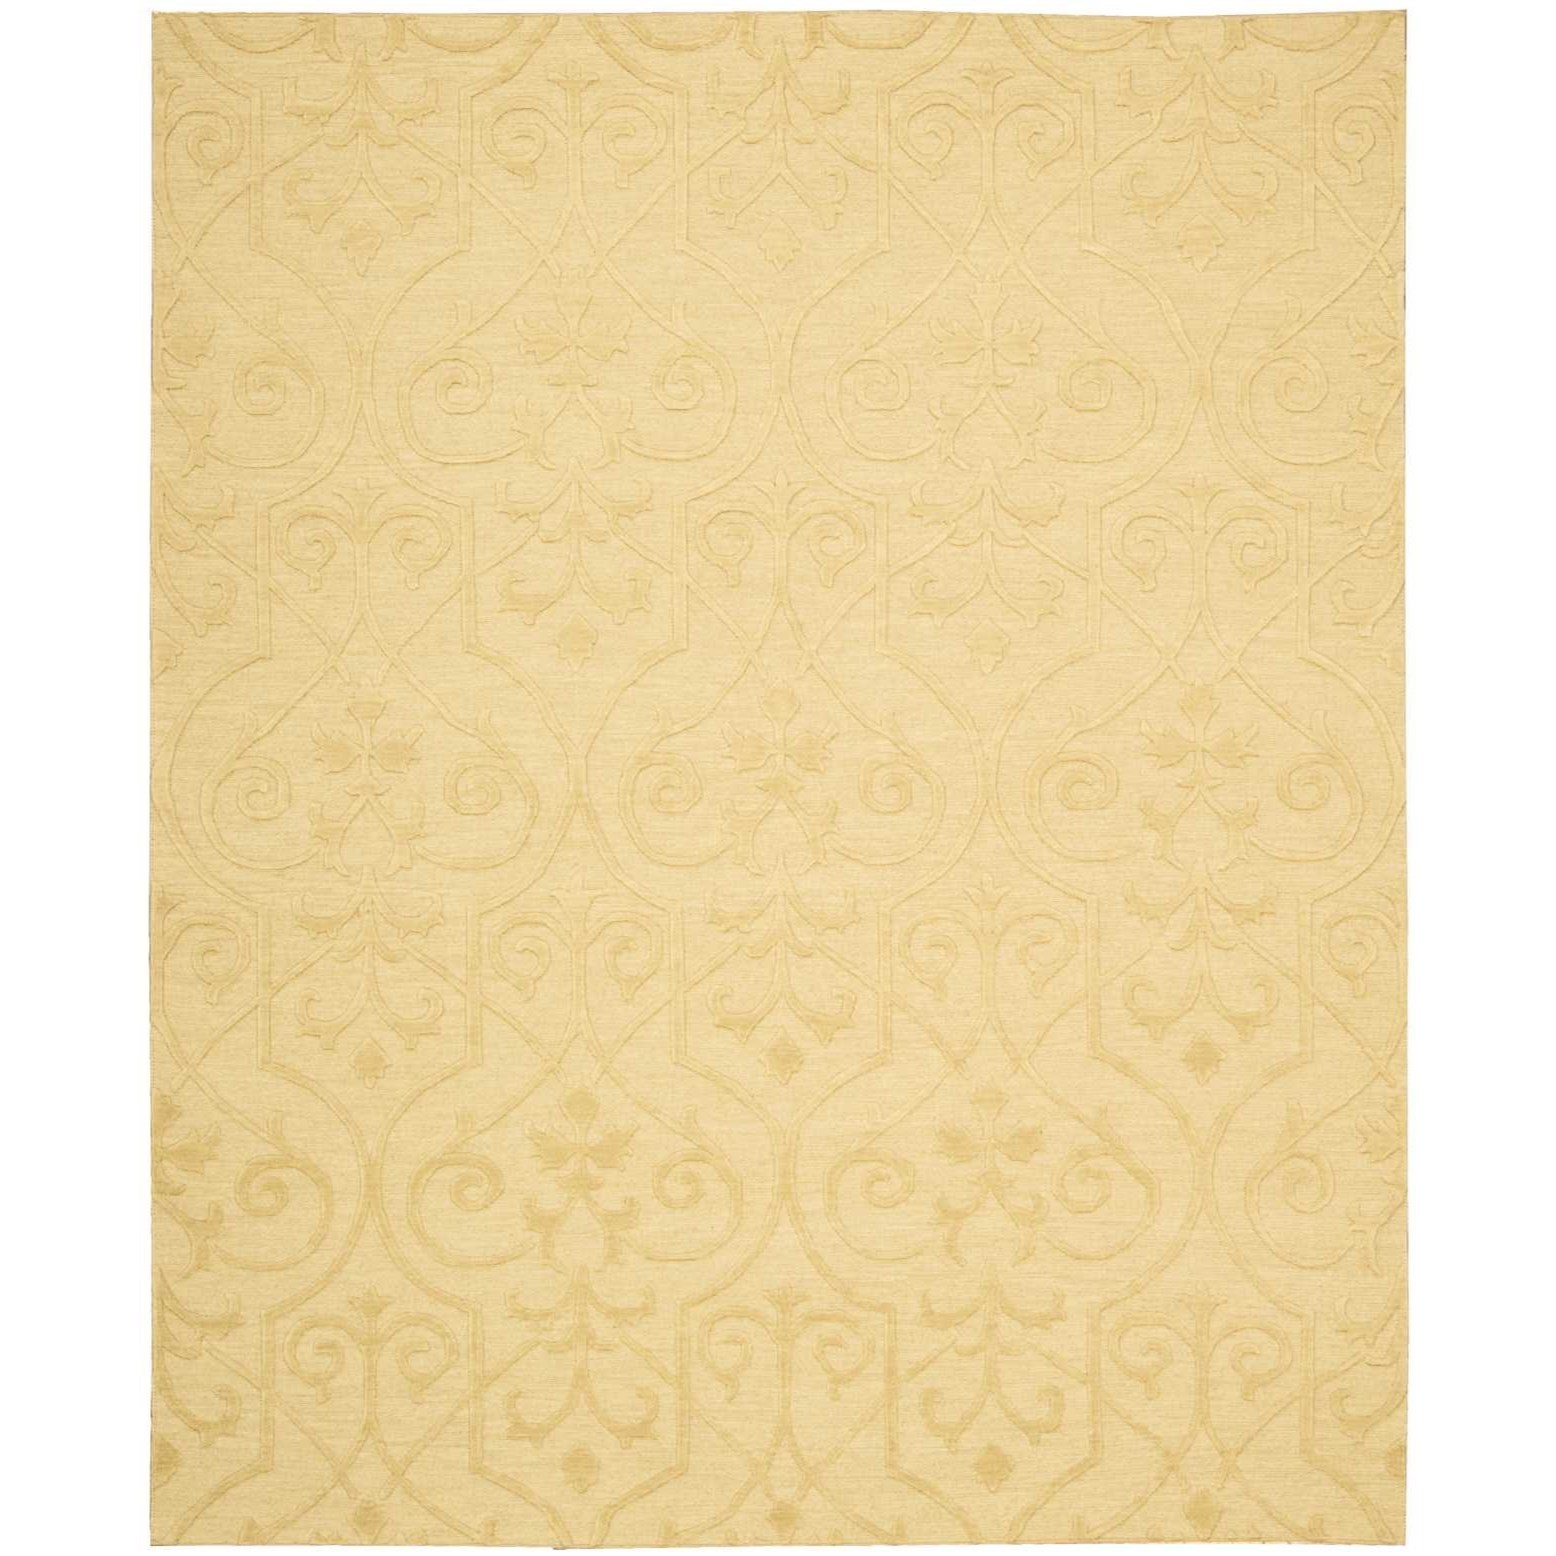 "8'6"" x 11'6"" Straw Rectangle Rug"